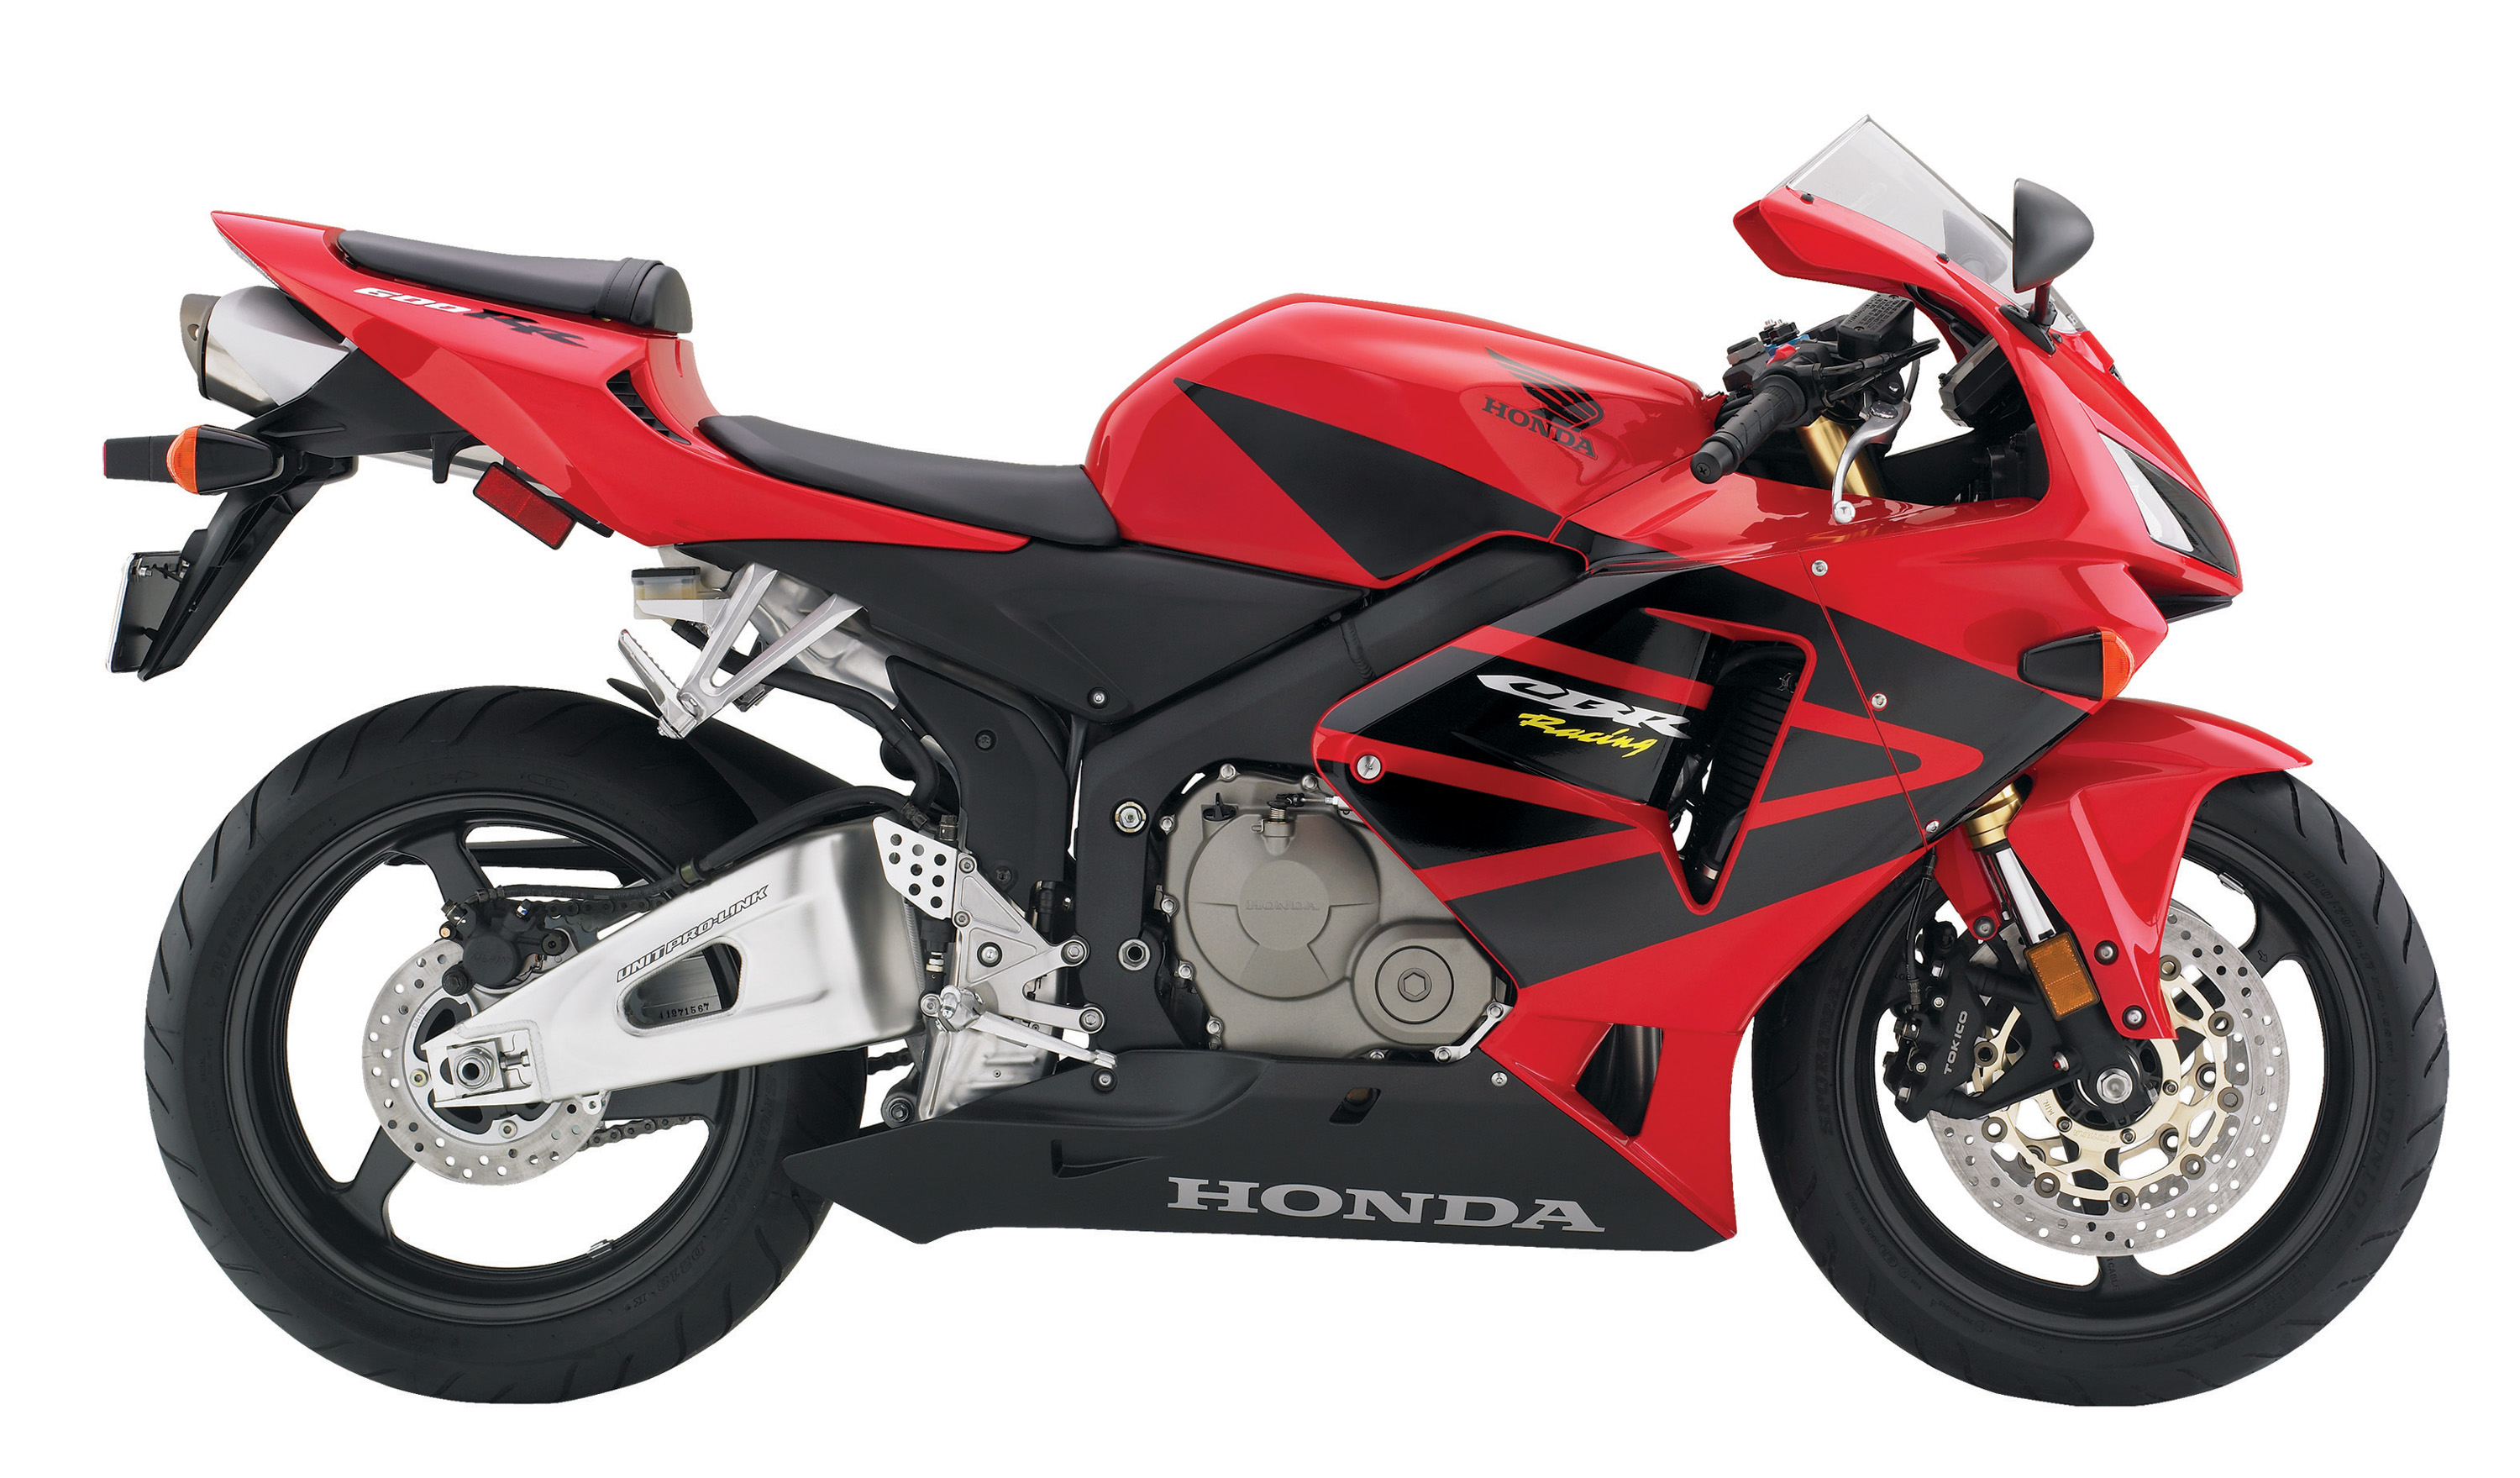 2006 Honda Cbr600rr Review Top Speed